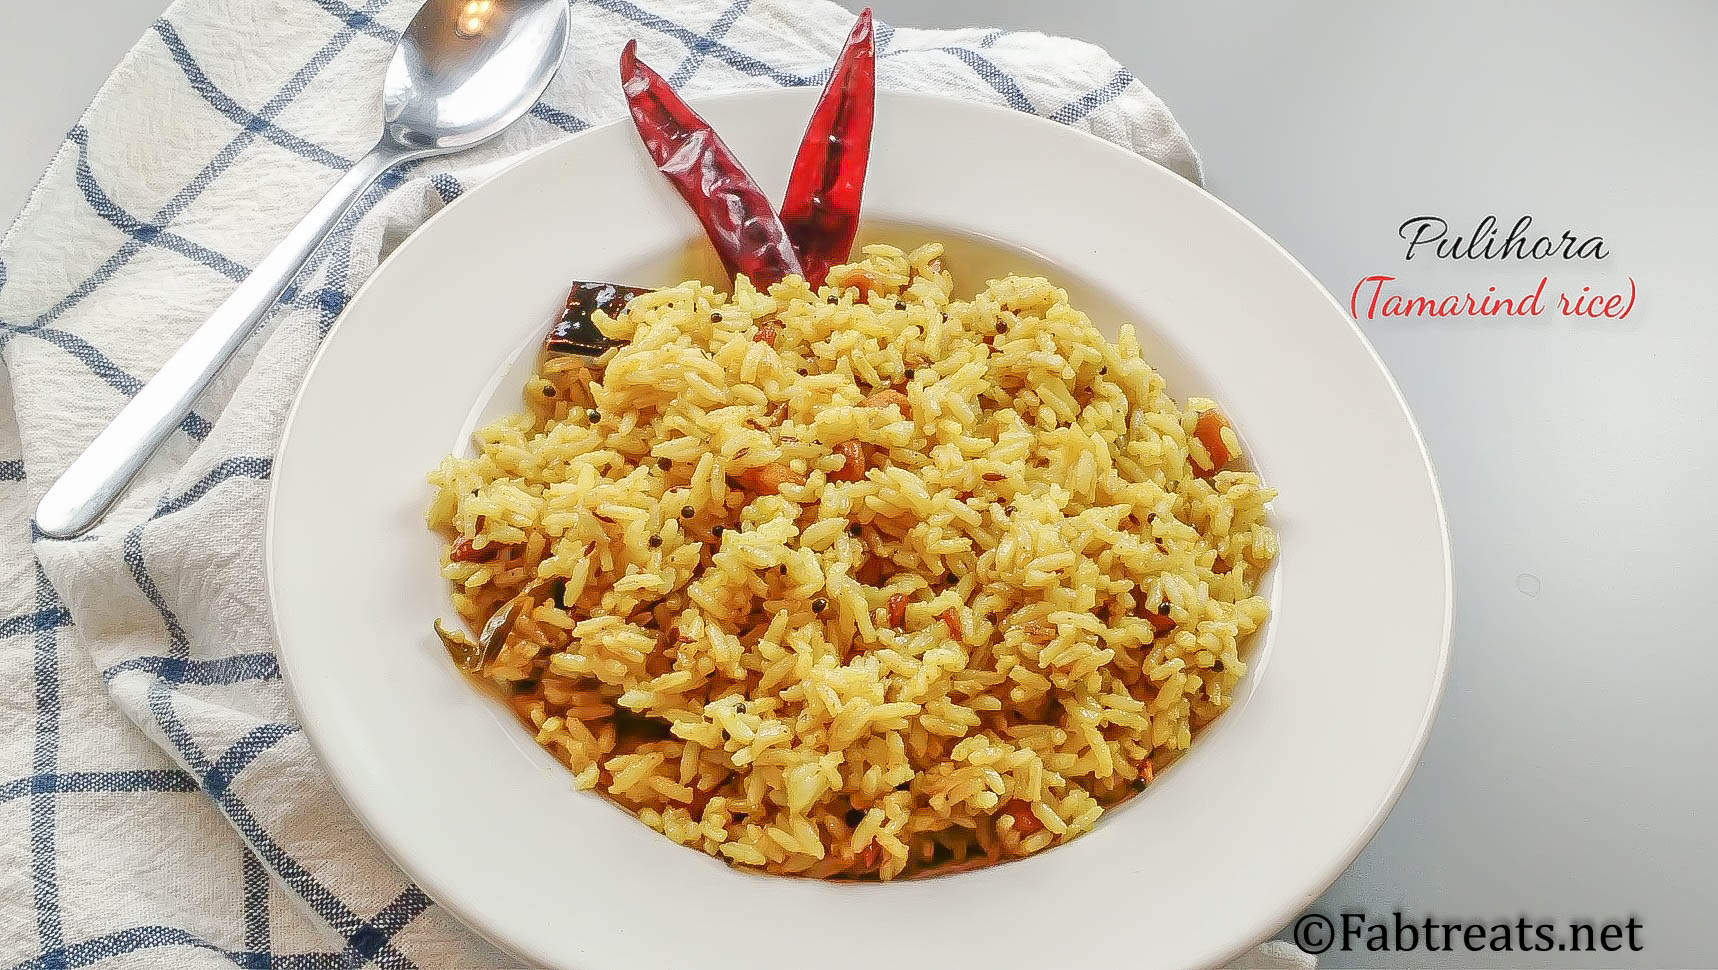 Tamarind Rice With Pictures